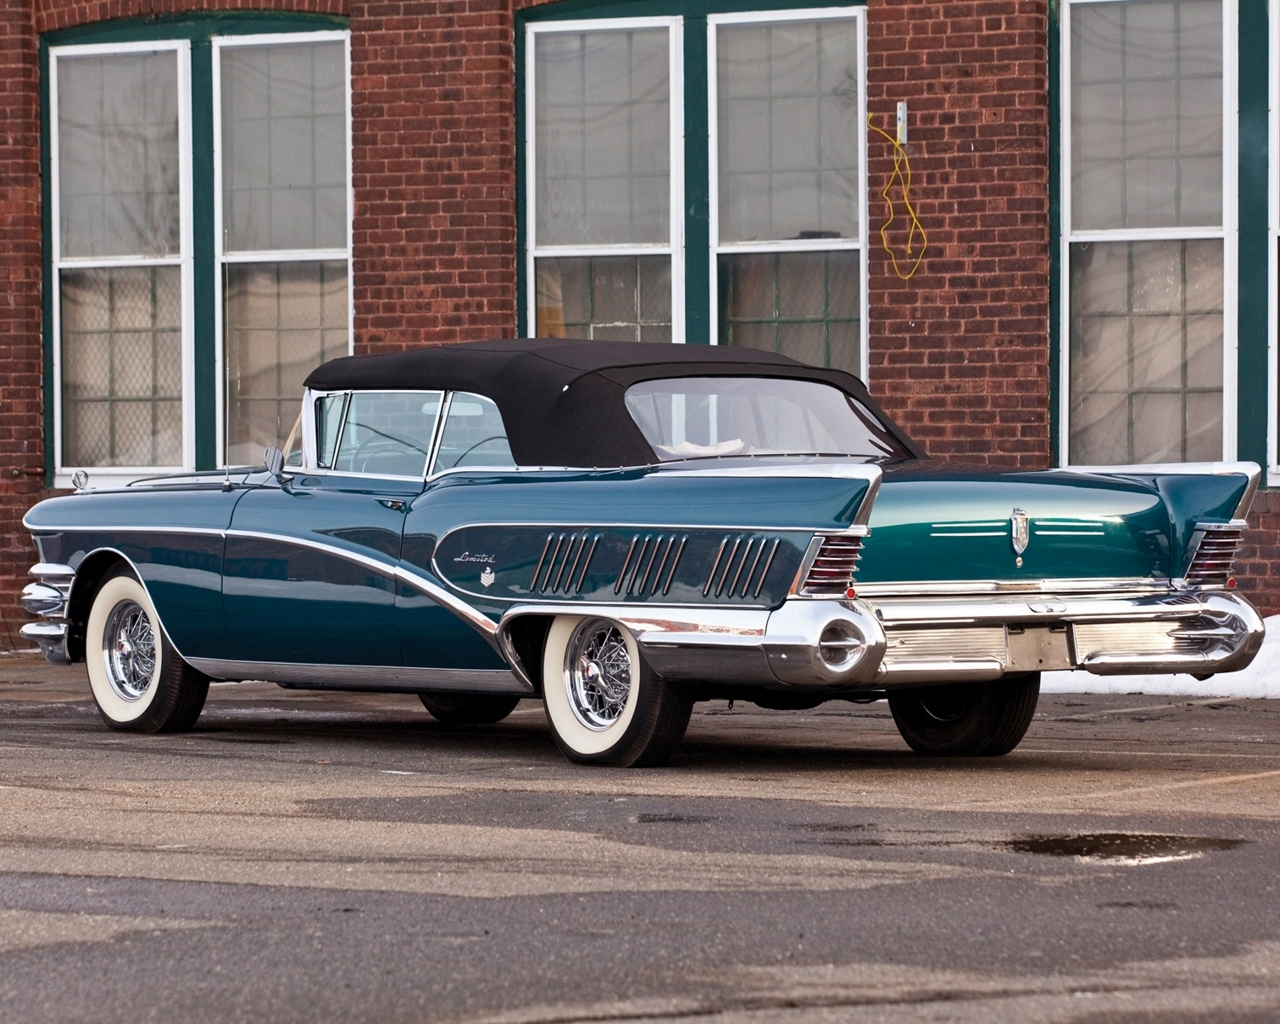 Hd wallpapers 2012 american classic cars wallpapers - Old american cars wallpapers ...